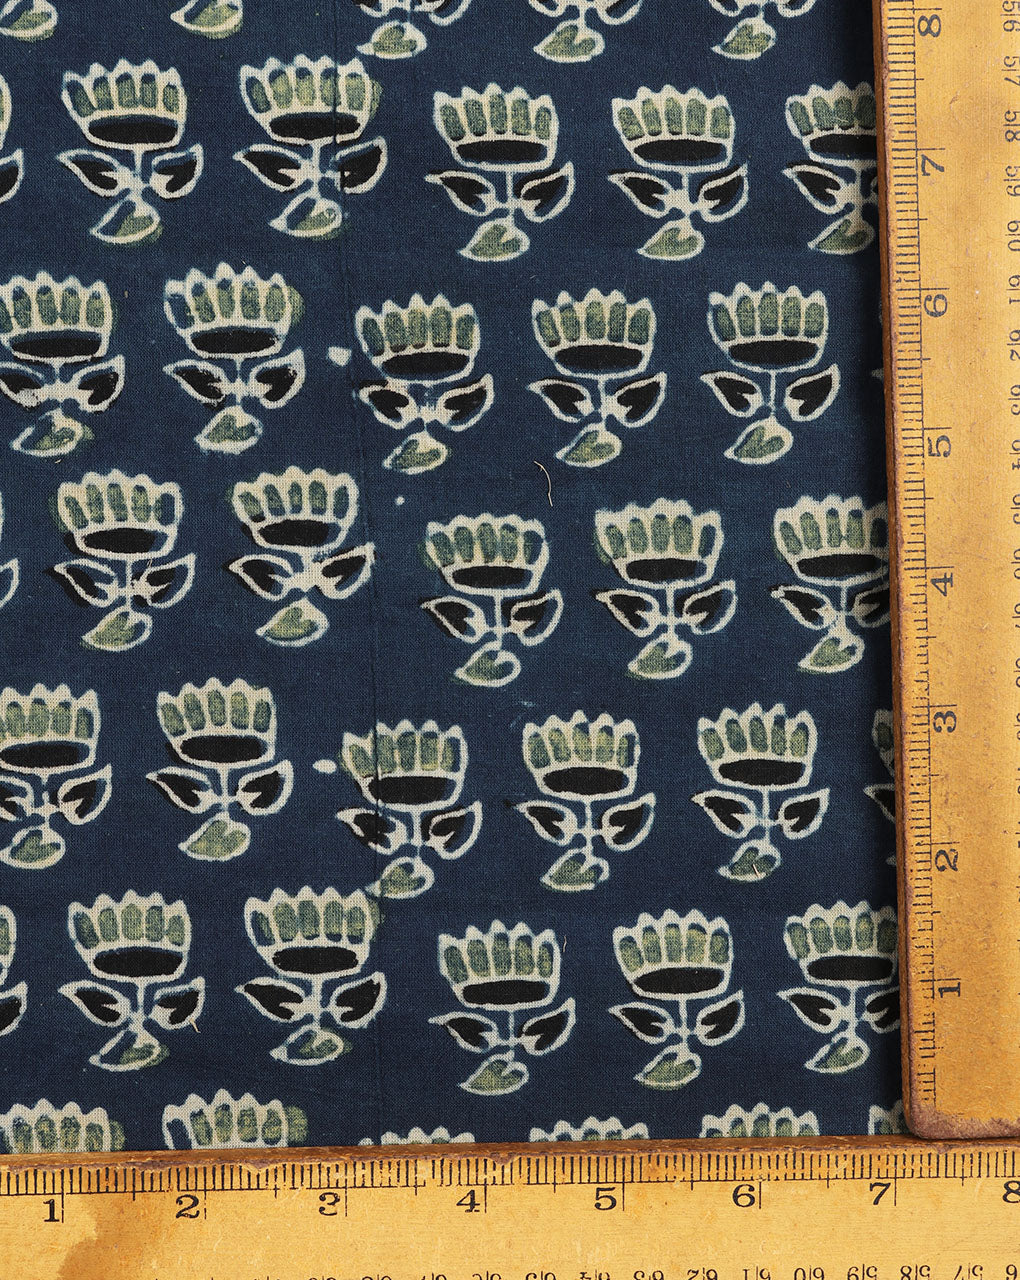 Blue & Green Ajrak Floral Hand Block Natural Dye Cotton Fabric - Fabriclore.com